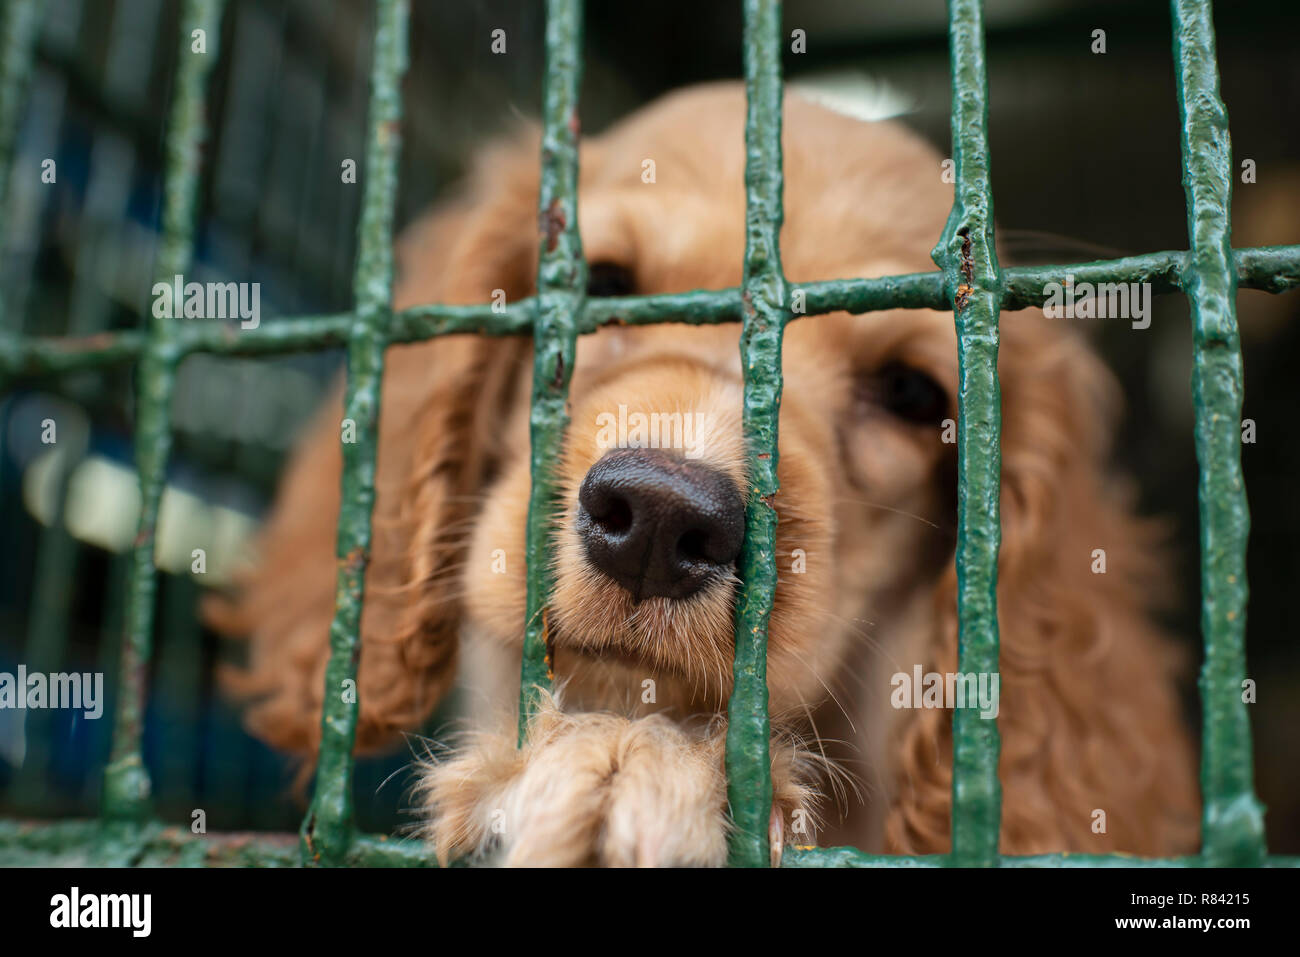 Cocker spaniel puppy in a cage, waiting for his next owner behind bars. Dogs for sale in a pet shop of Cartagena de Indias, Colombia, South America - Stock Image